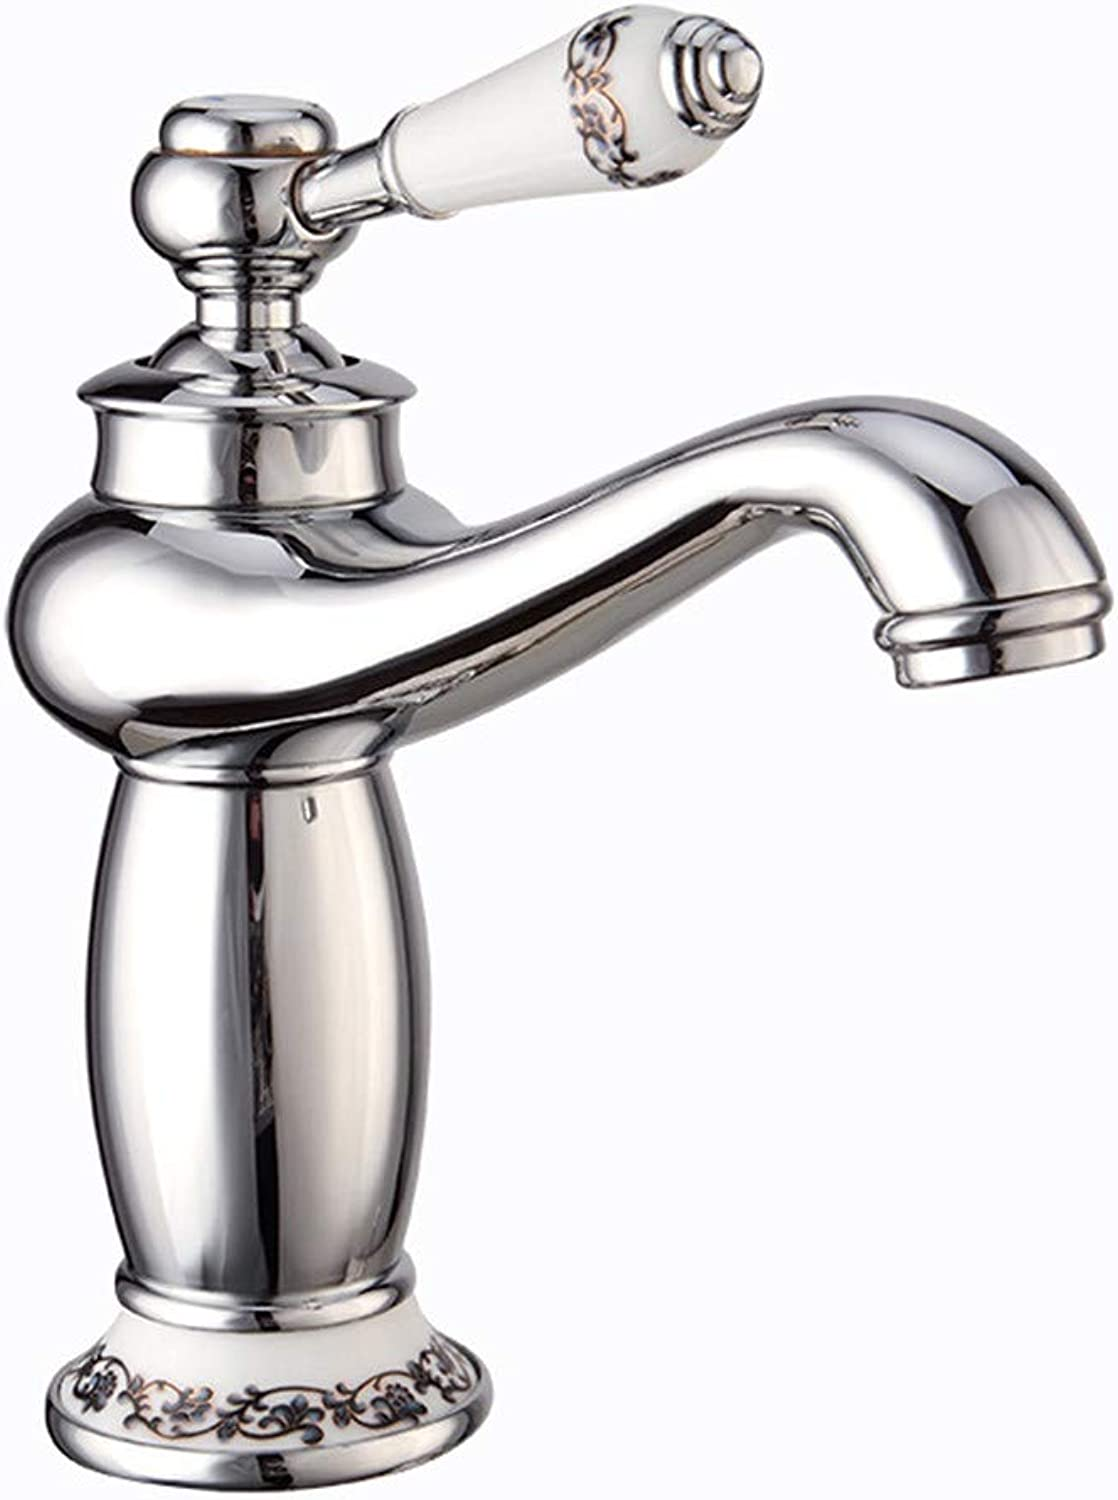 Mucert Tap,All Copper,Hot and Cold Water Mixing Faucet,Single Hole,Basin Faucet